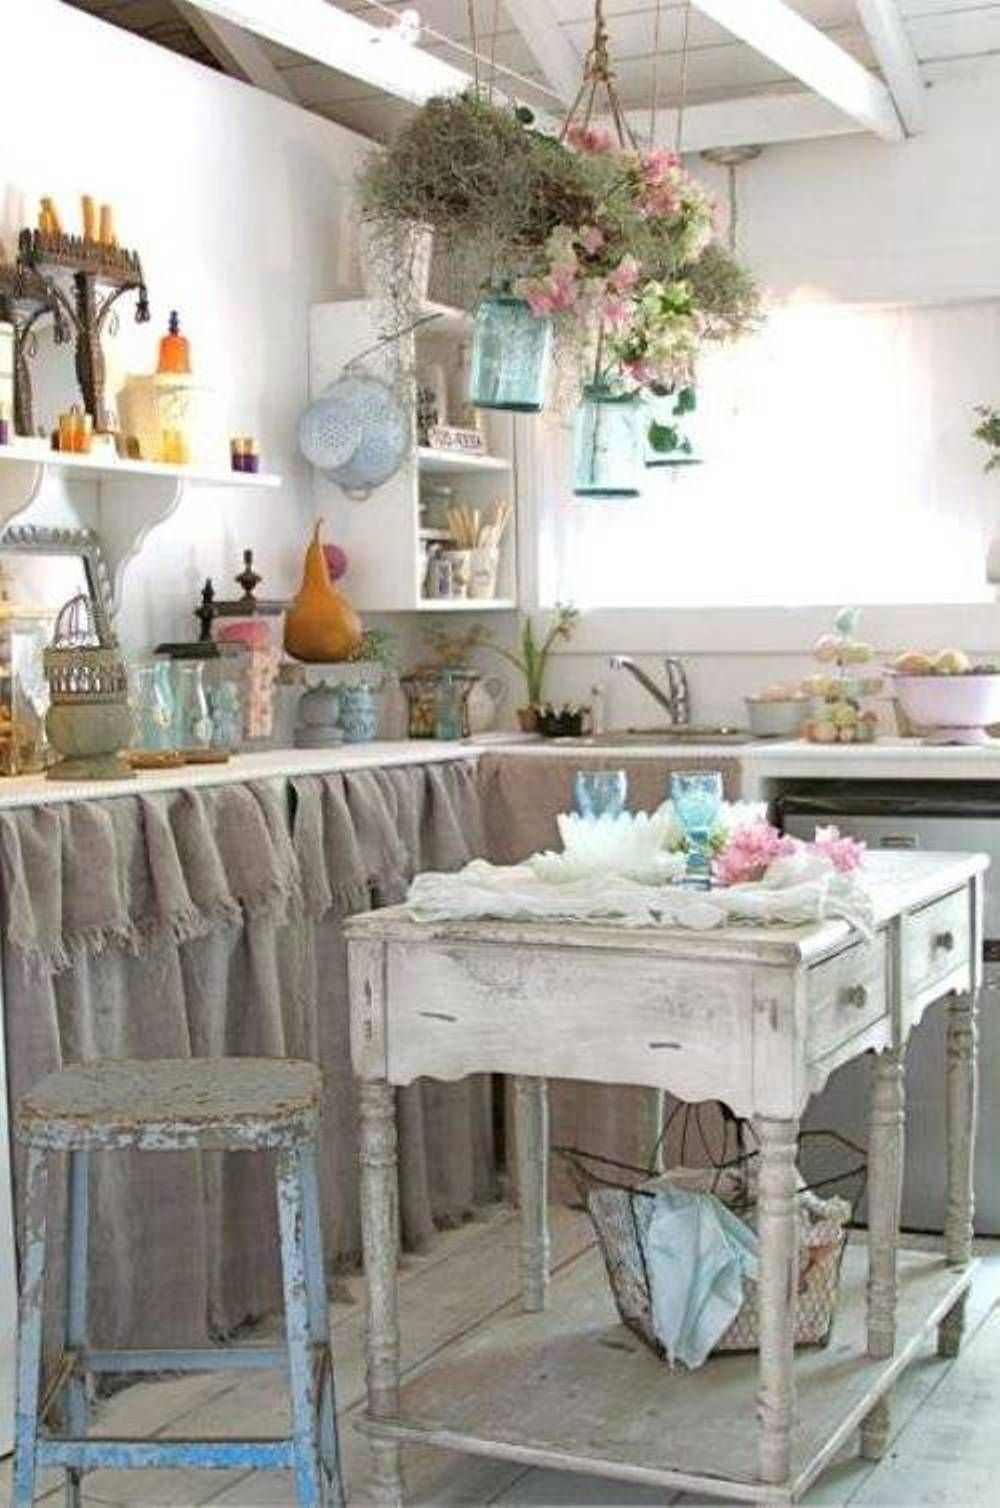 Cocinas Estilo Shabby Chic Amazing Shabby Chic Beautiful Shabby Chic Kitchen Shabby Chic